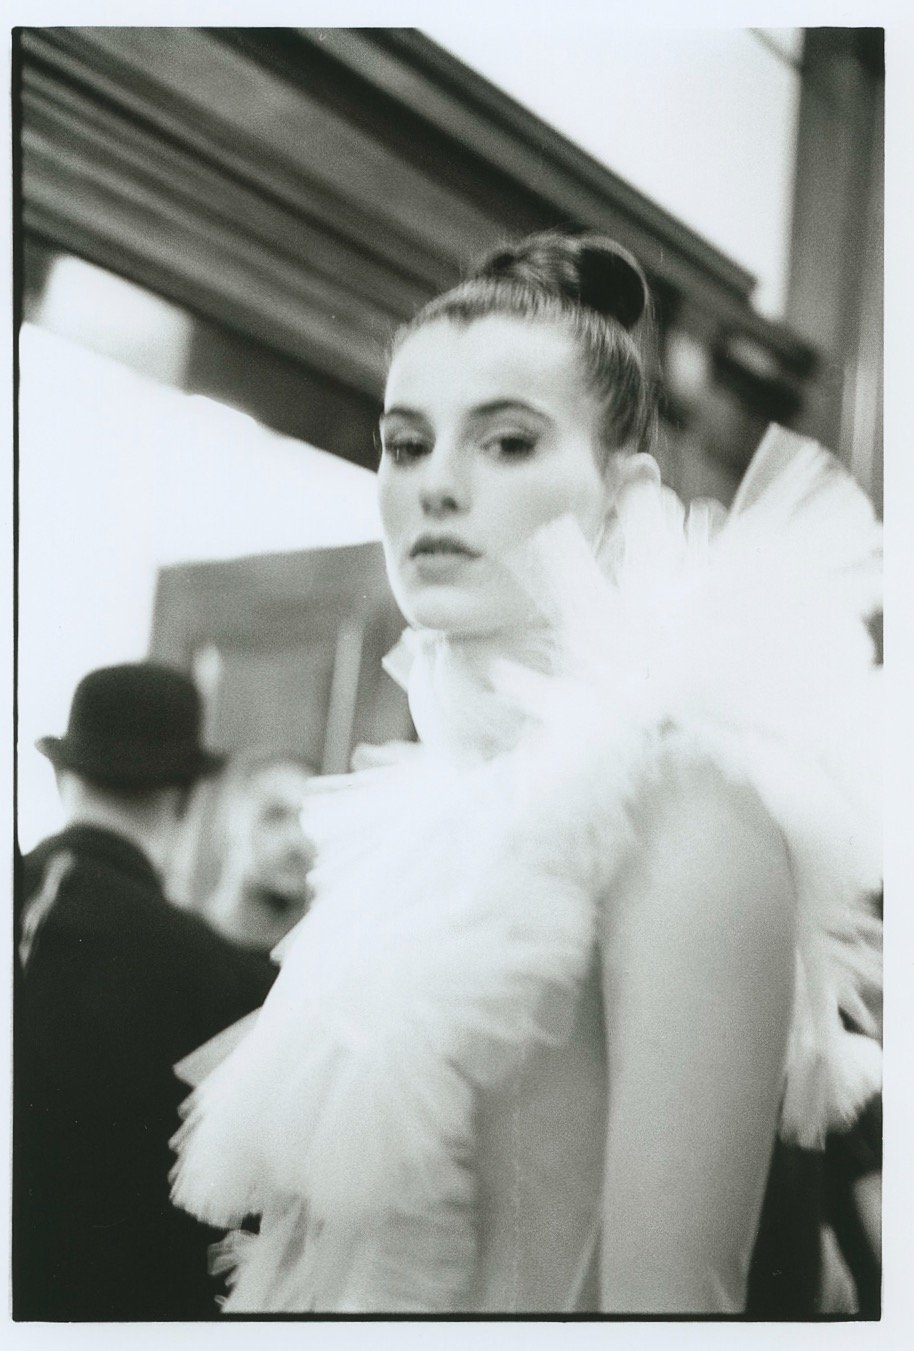 London Fashion Week Backstage | Leica M4 | Ralph Whitehead